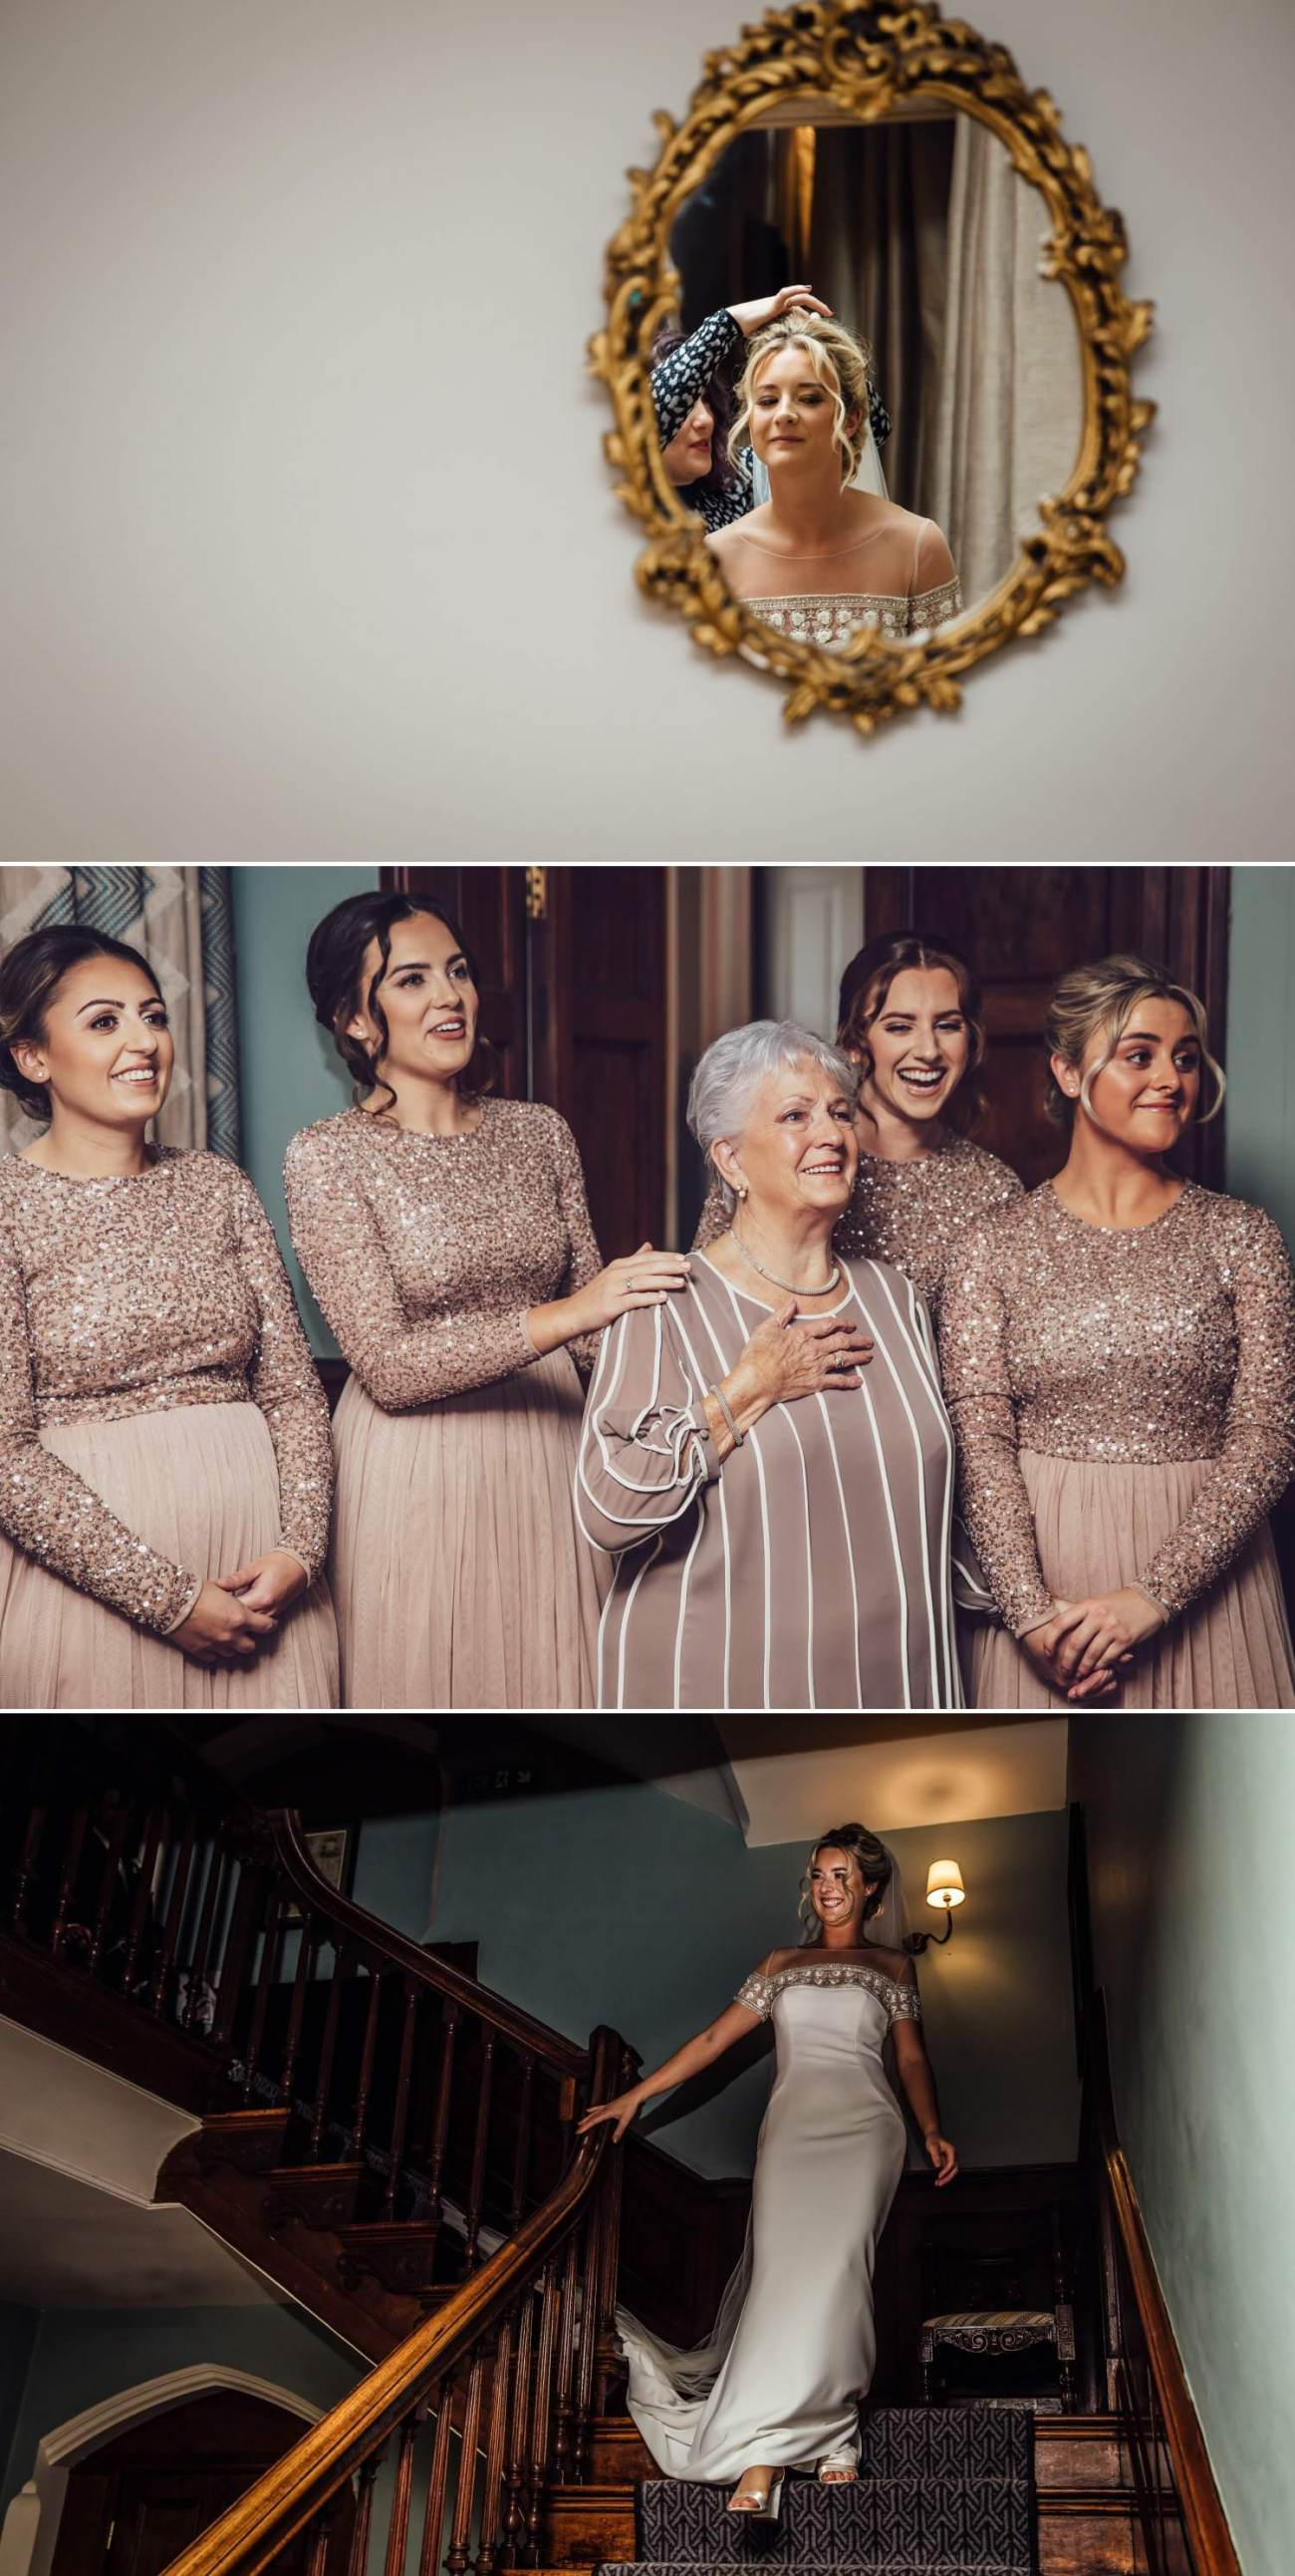 Wedding photographer north wales showcasing the bride coming down the stairs in soughton hall